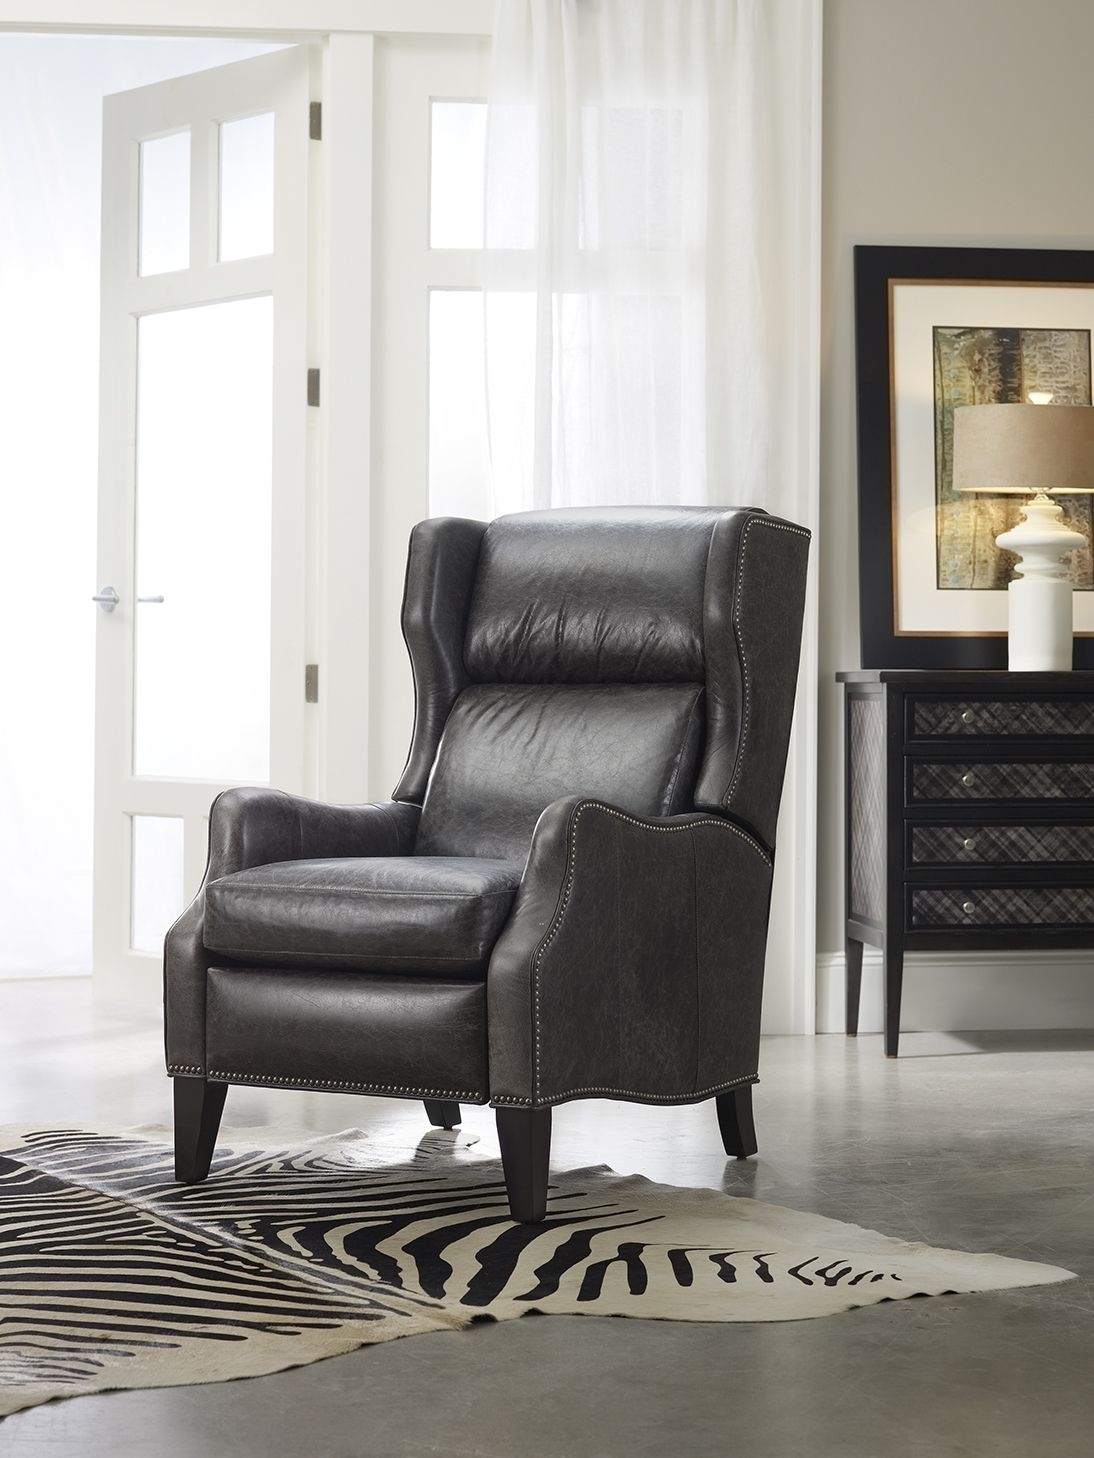 Grey Gorgeous In Grey Is The Vesta Recliner From Bradington Young Furniture New Living Room Lounge Decor